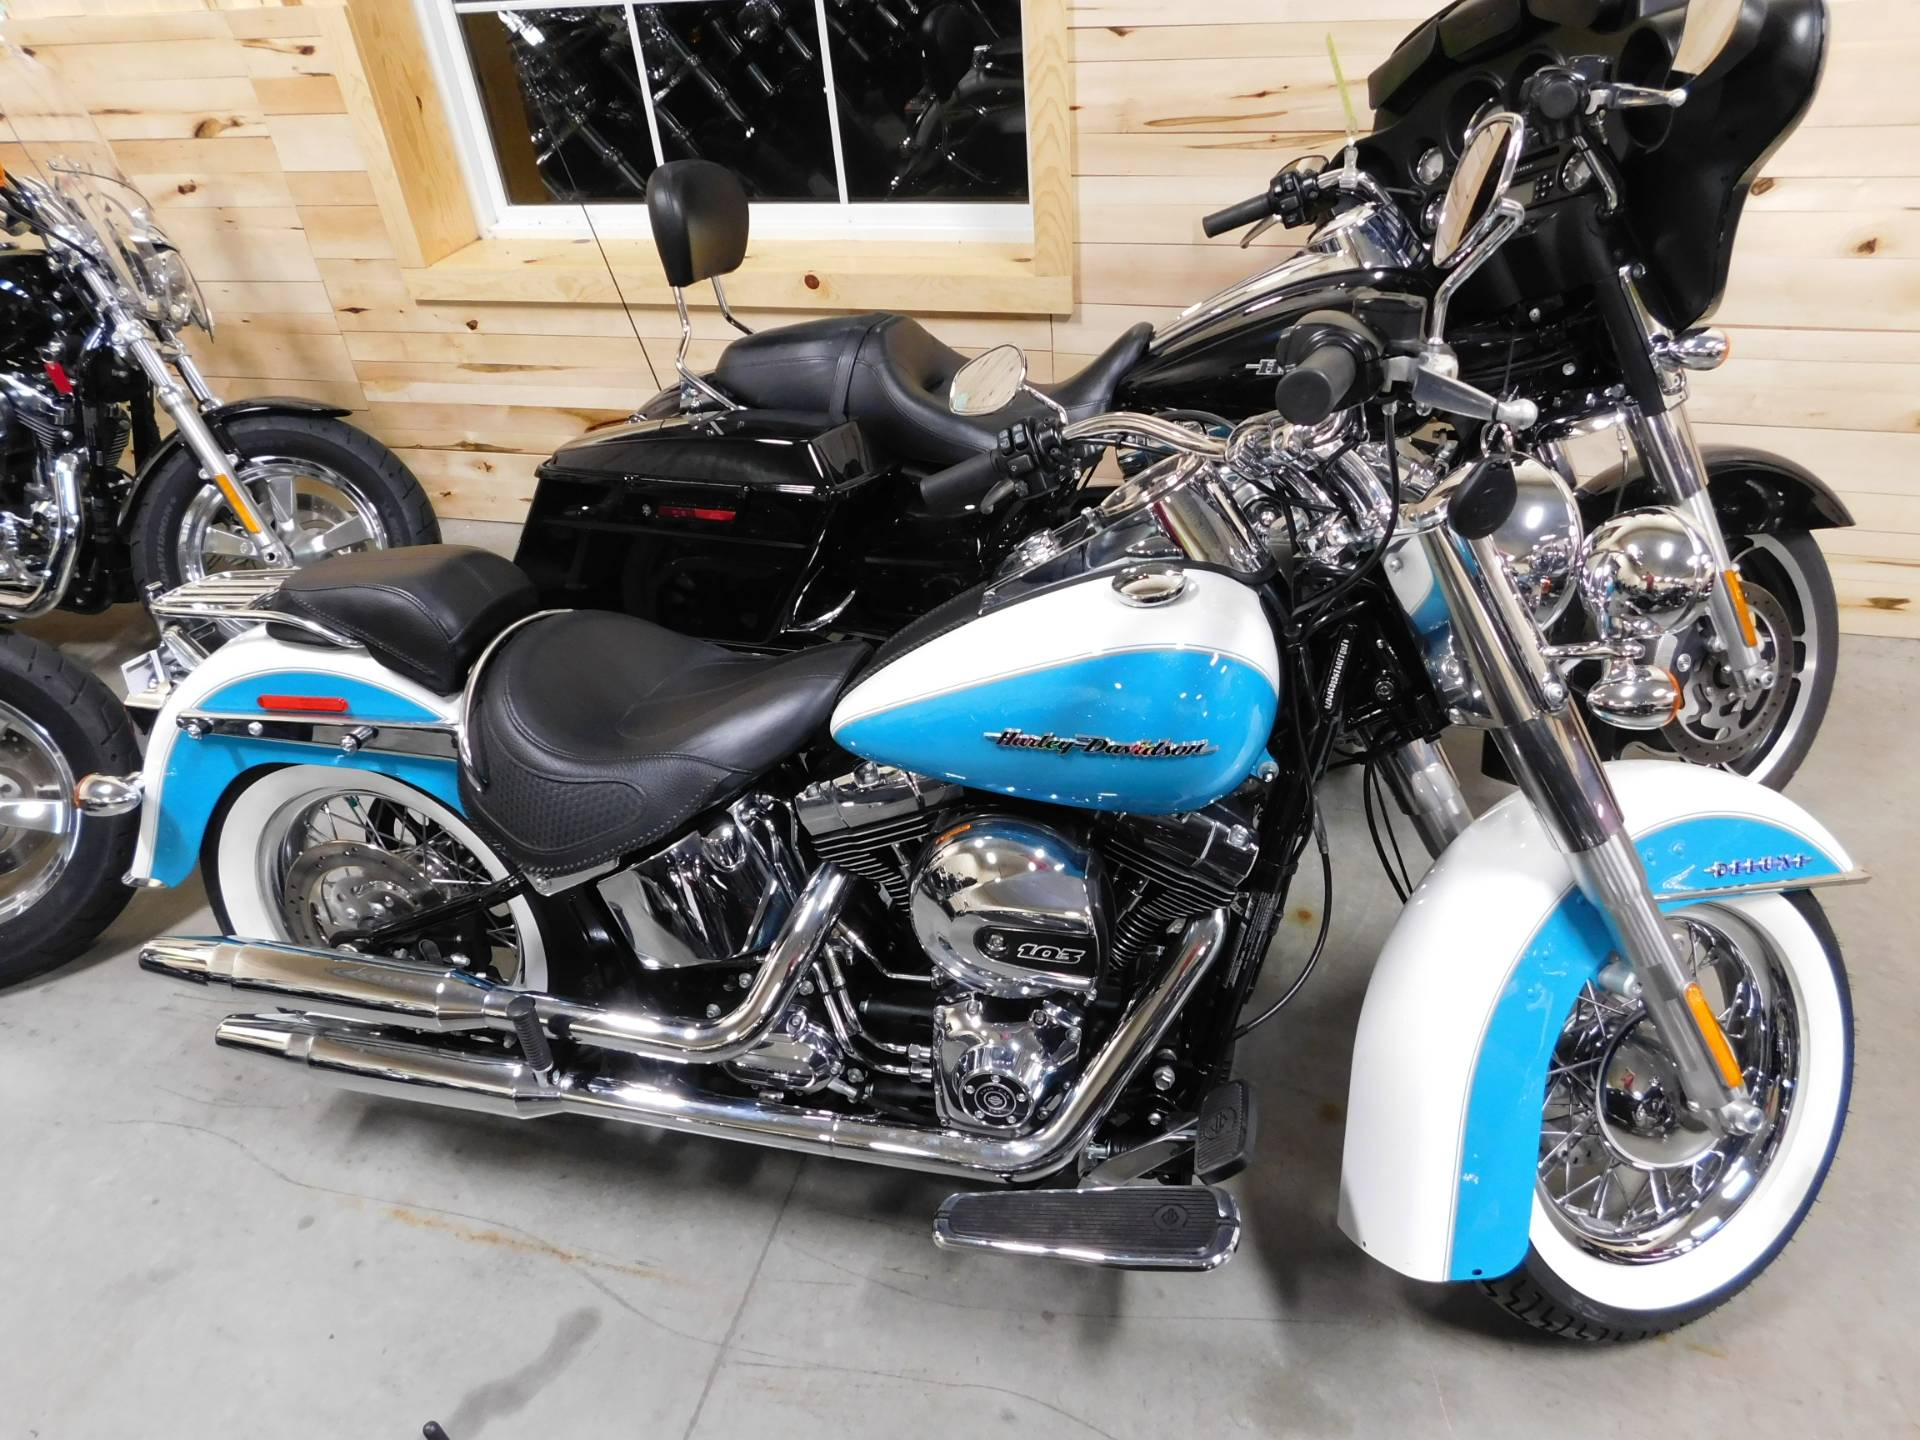 used 2016 harley davidson softail deluxe motorcycles in sauk rapids mn stock number n a. Black Bedroom Furniture Sets. Home Design Ideas